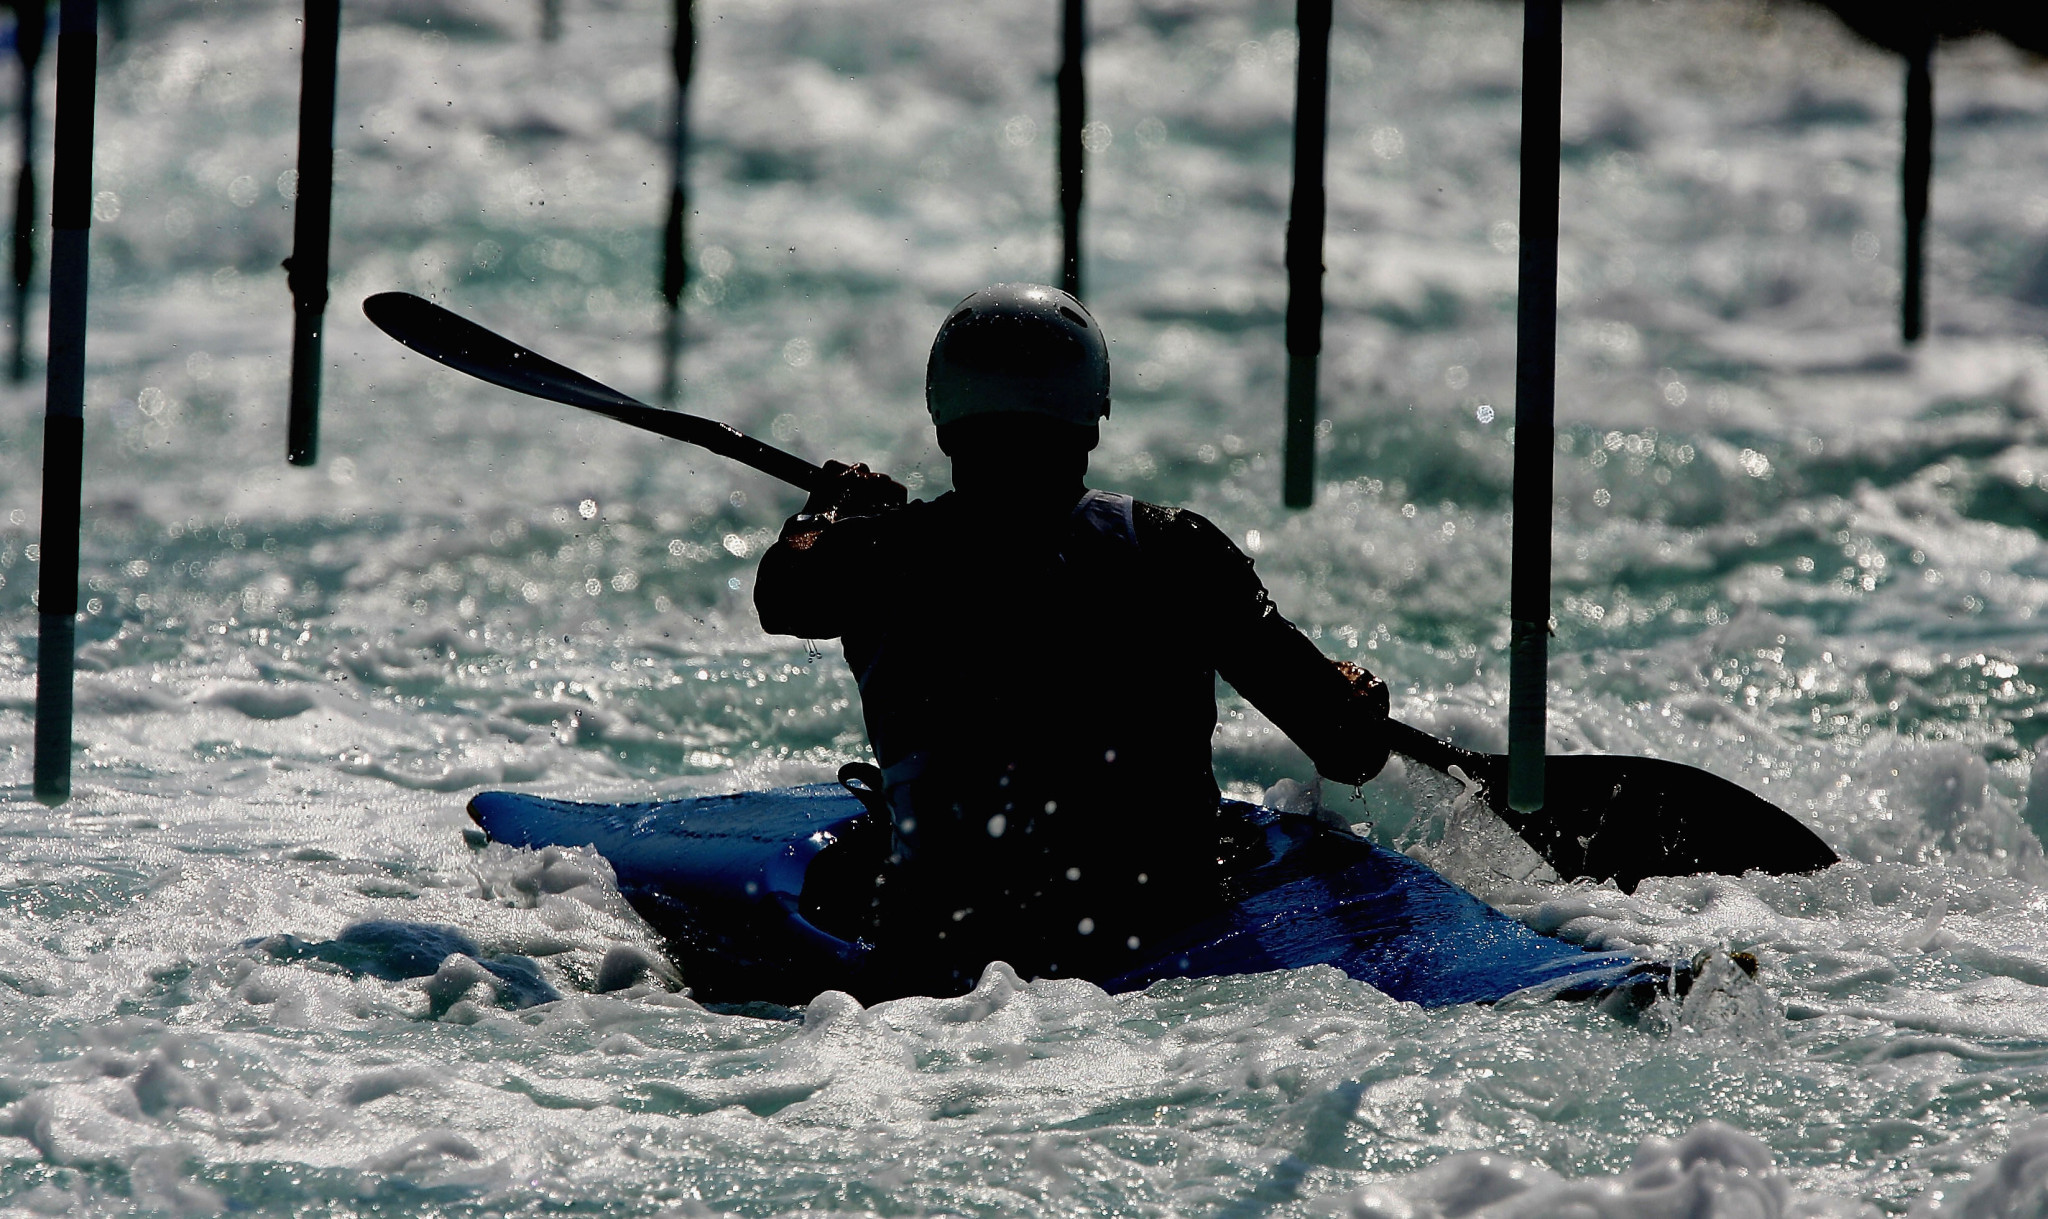 Indian kayak and canoeing teams absent from Tokyo 2020 qualifier due to COVID-19 surge